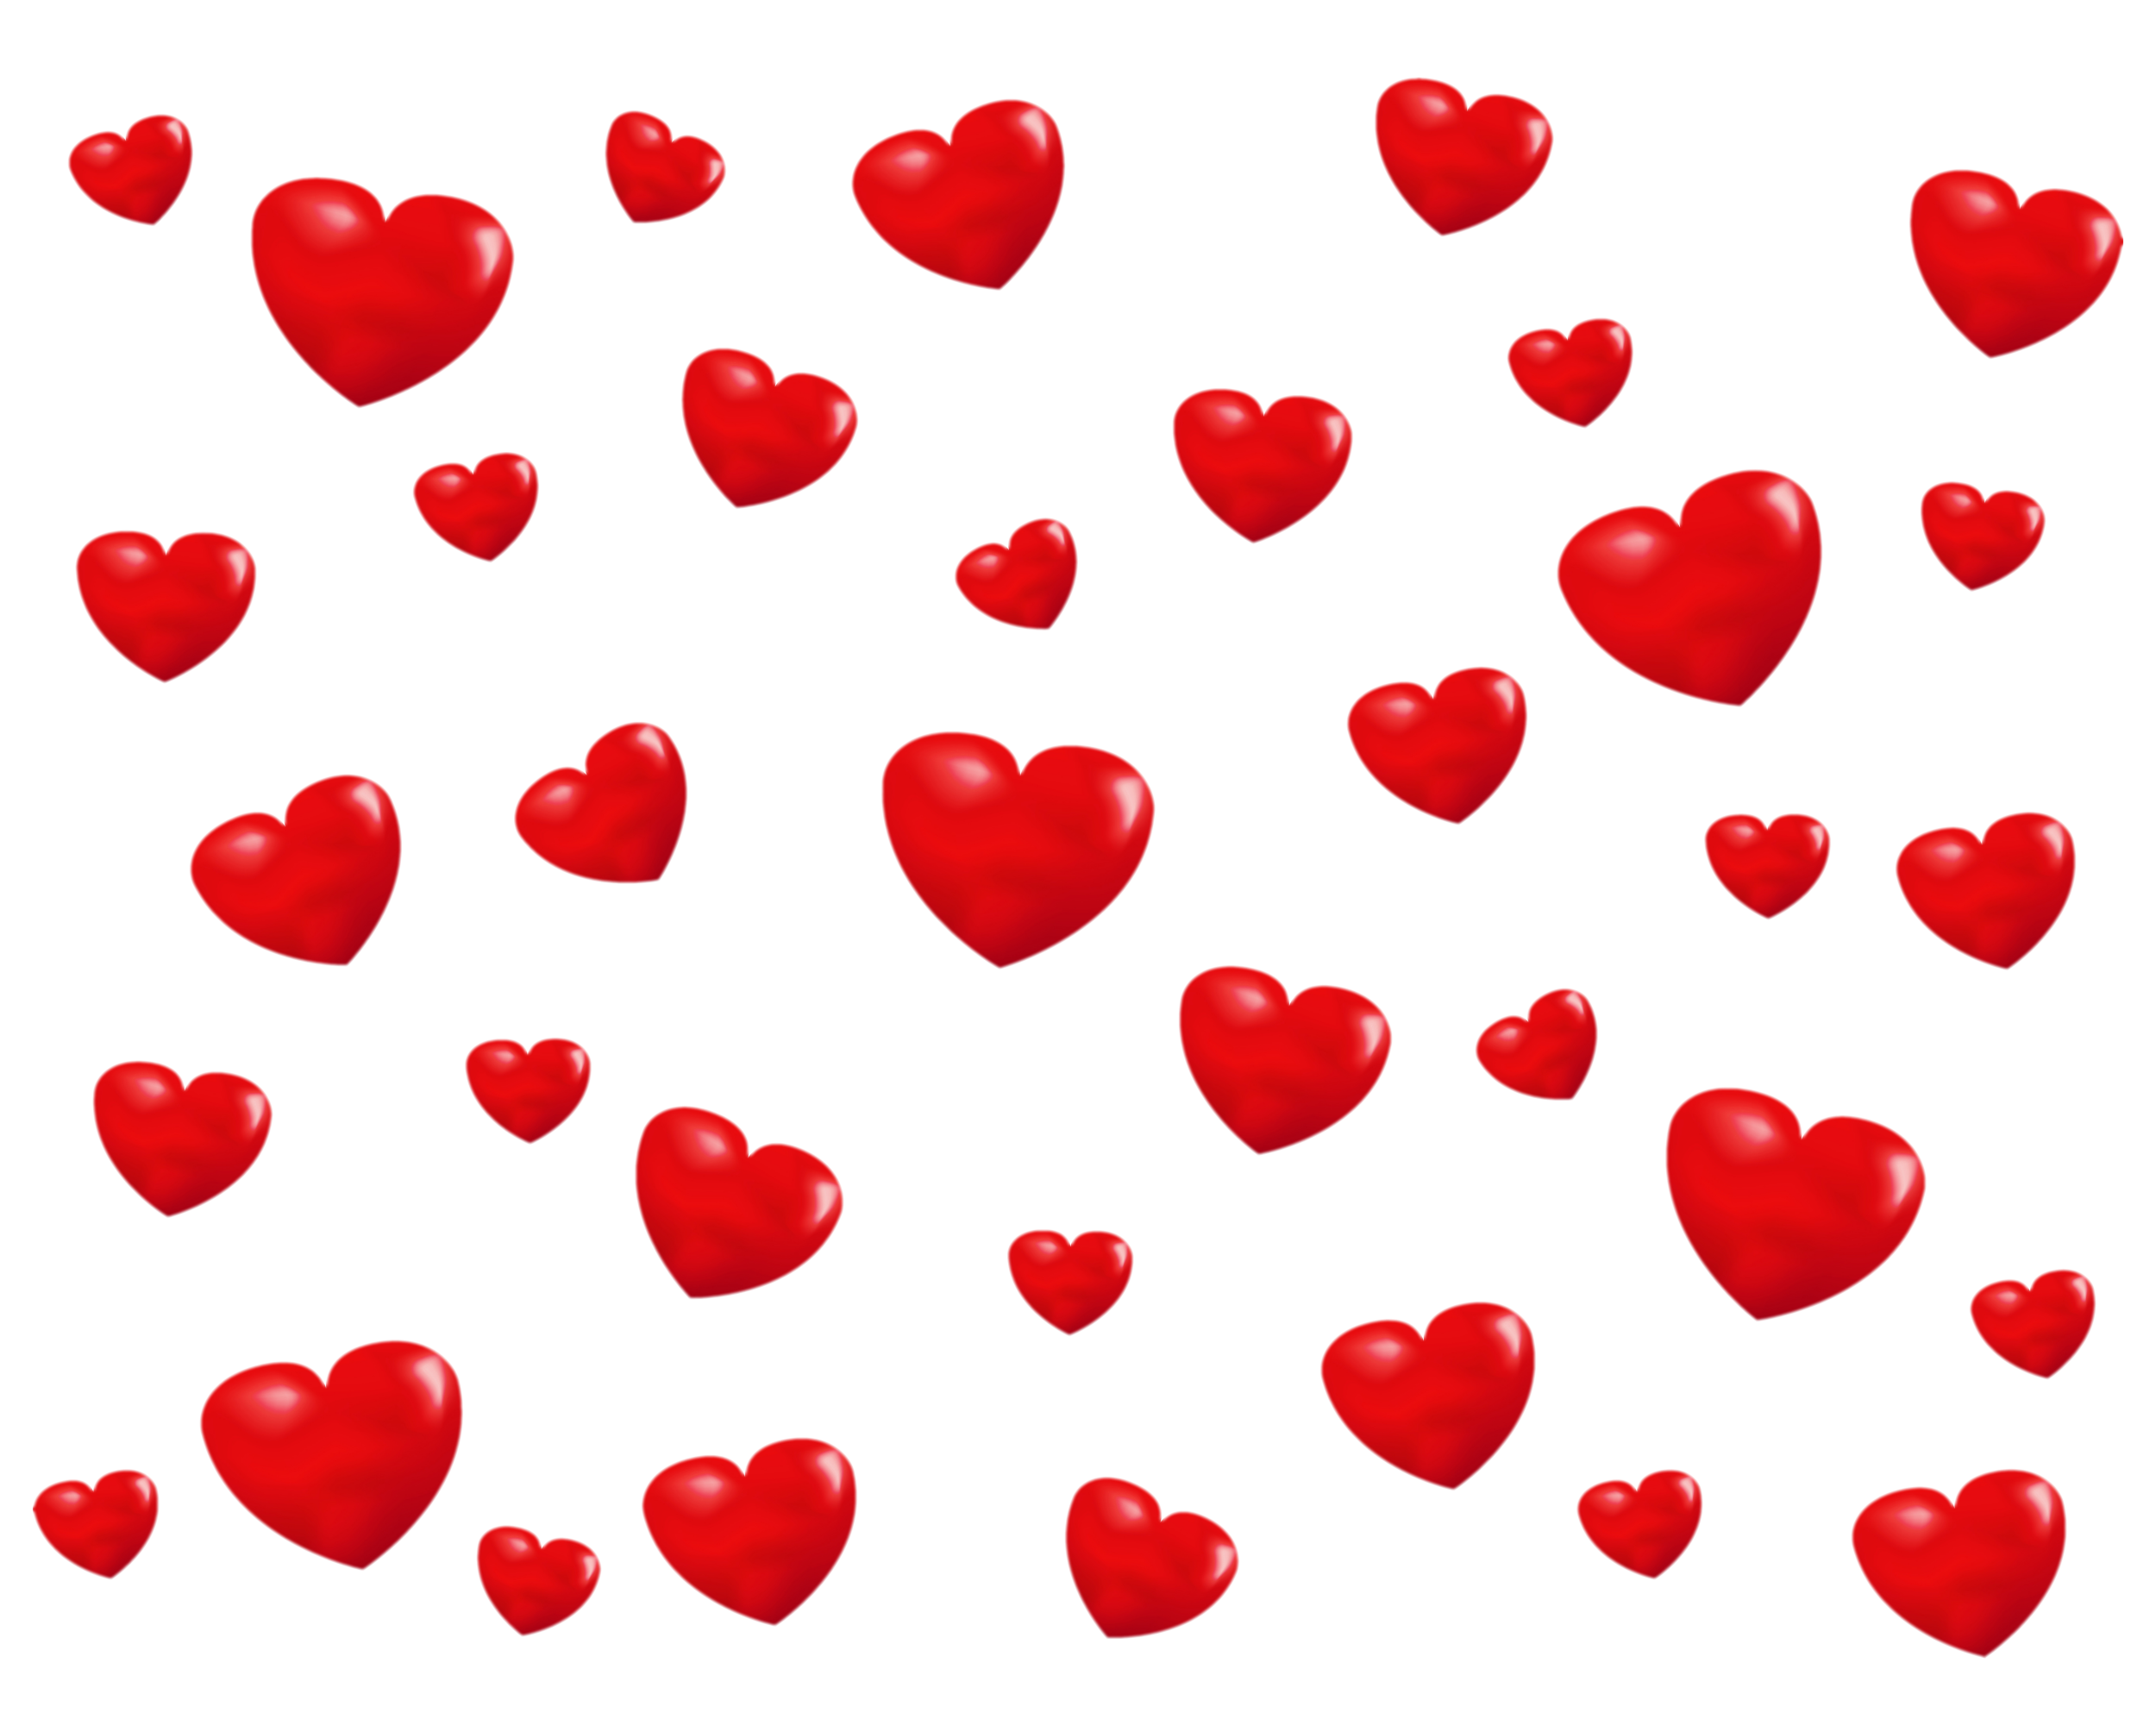 Heart png images with transparent background. Hearts gallery yopriceville view